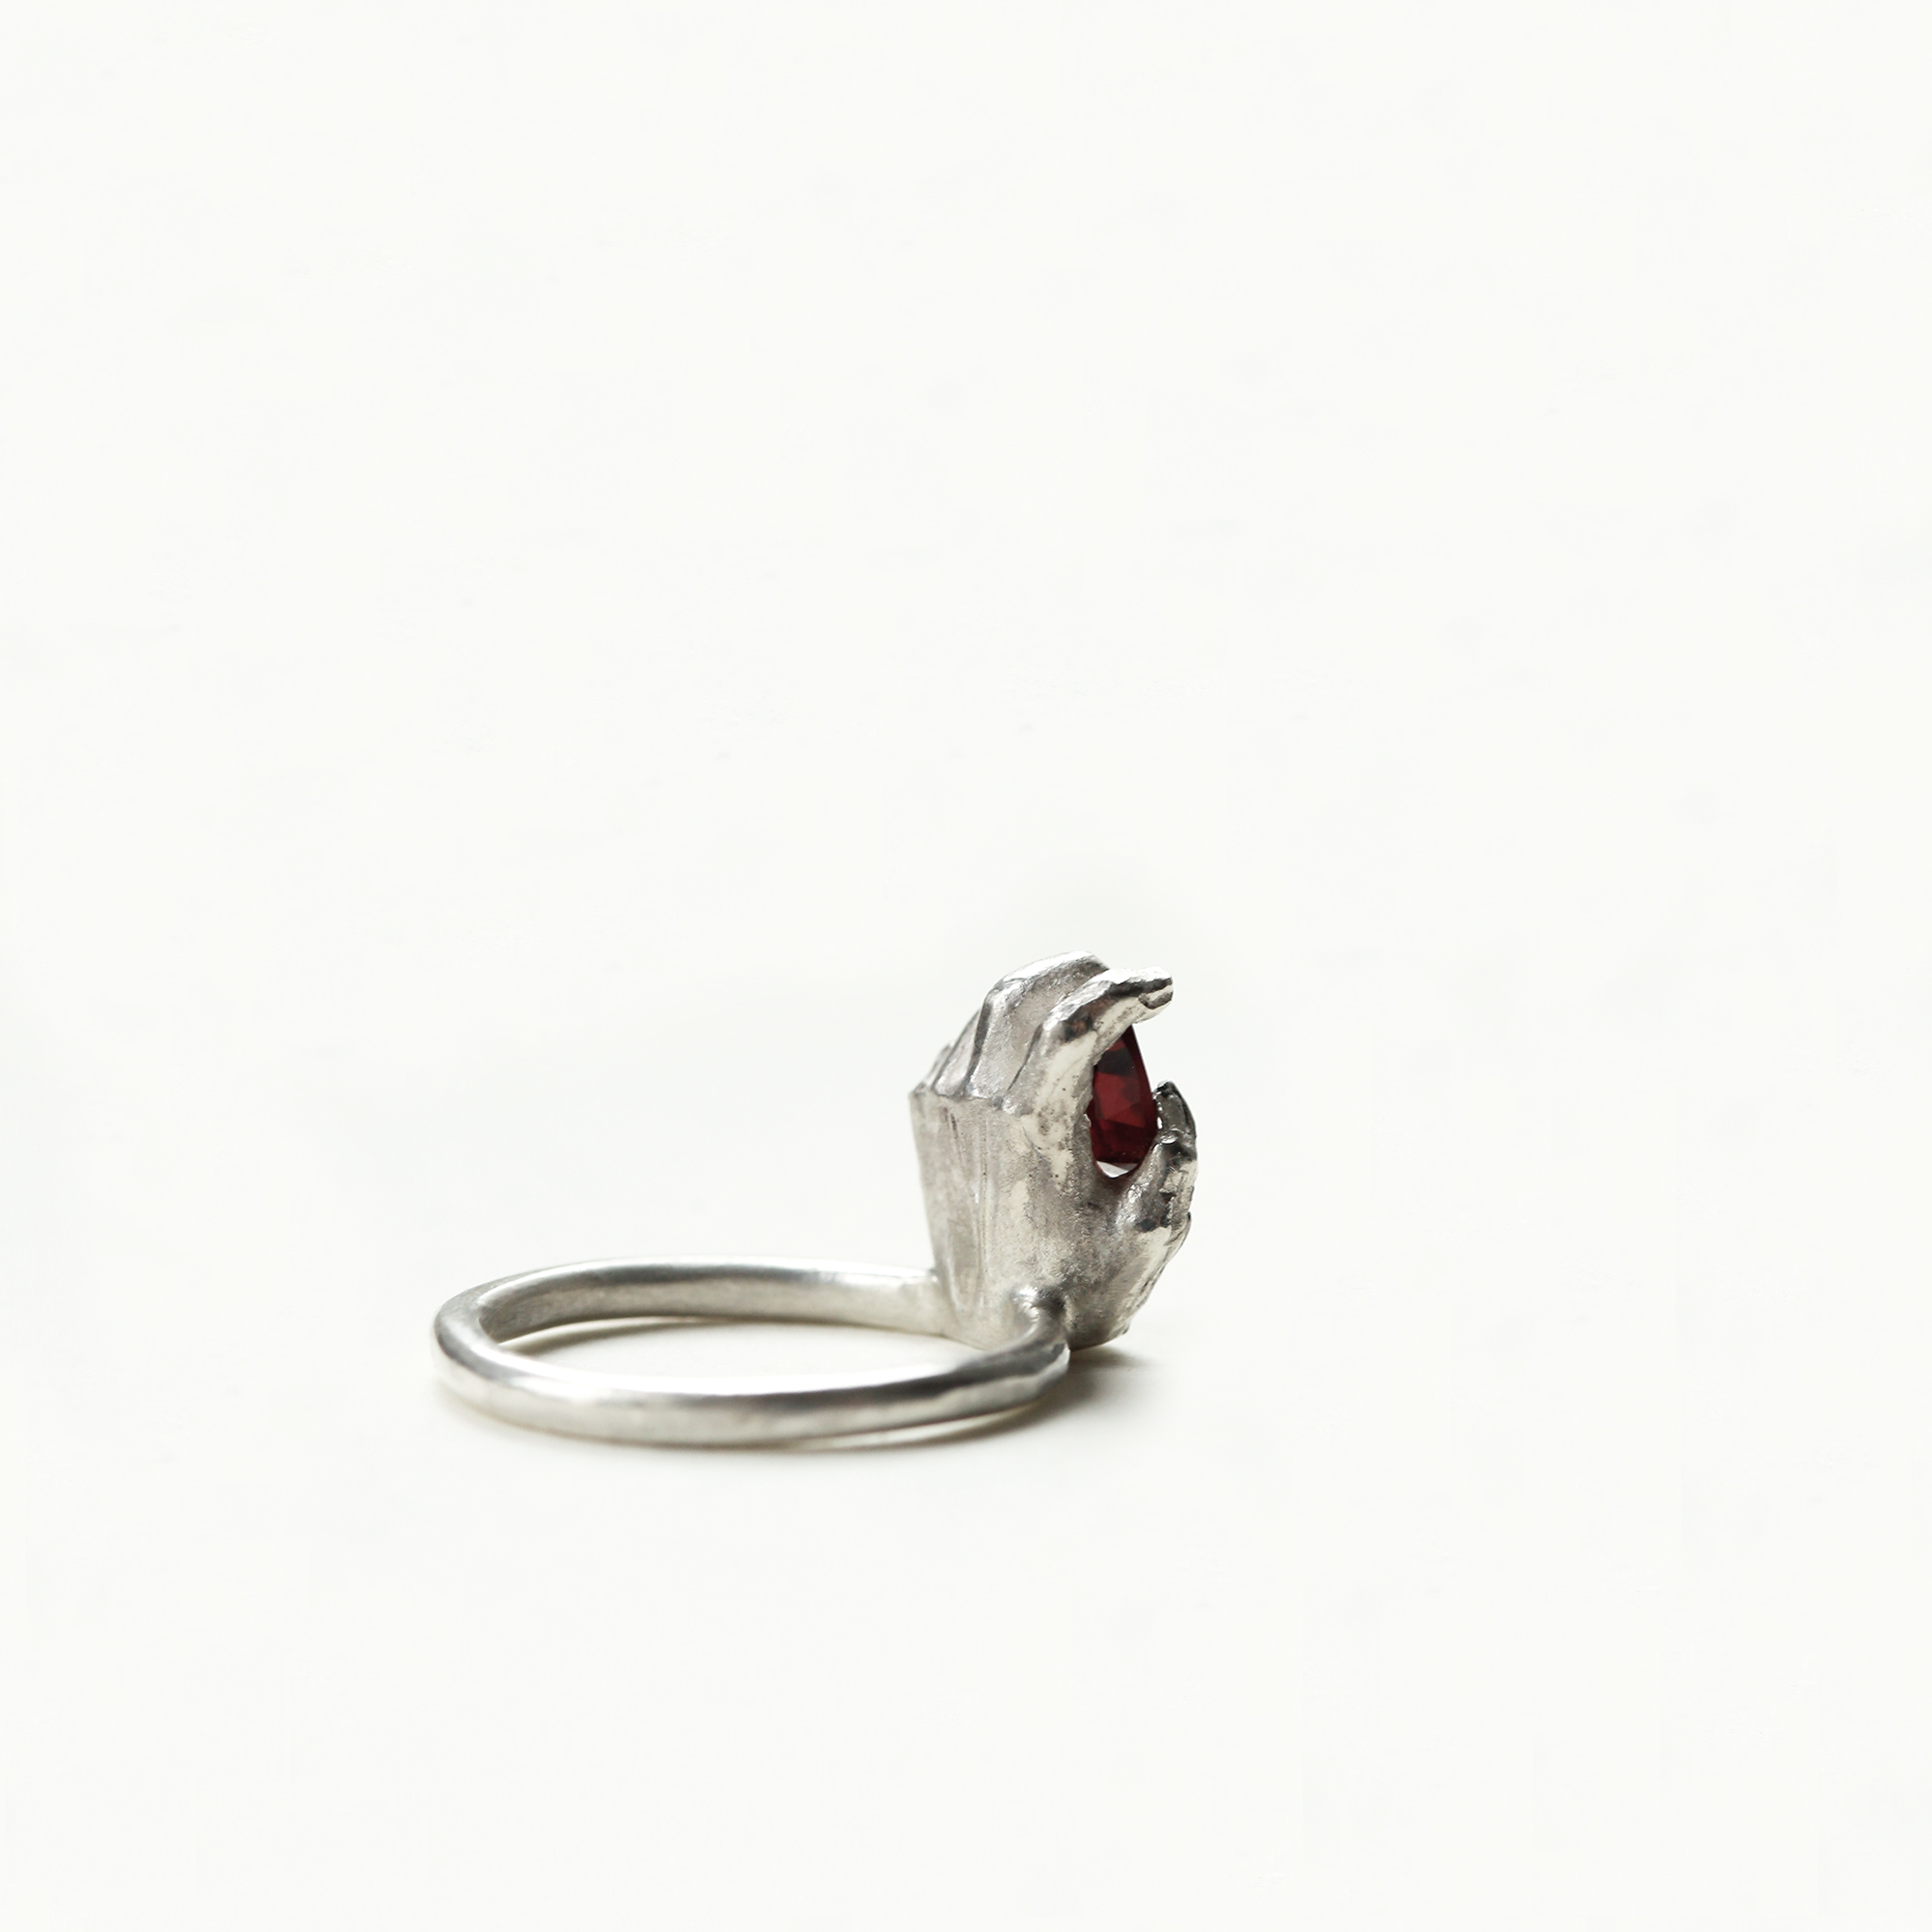 dovile b. always in my heart hand statement ring